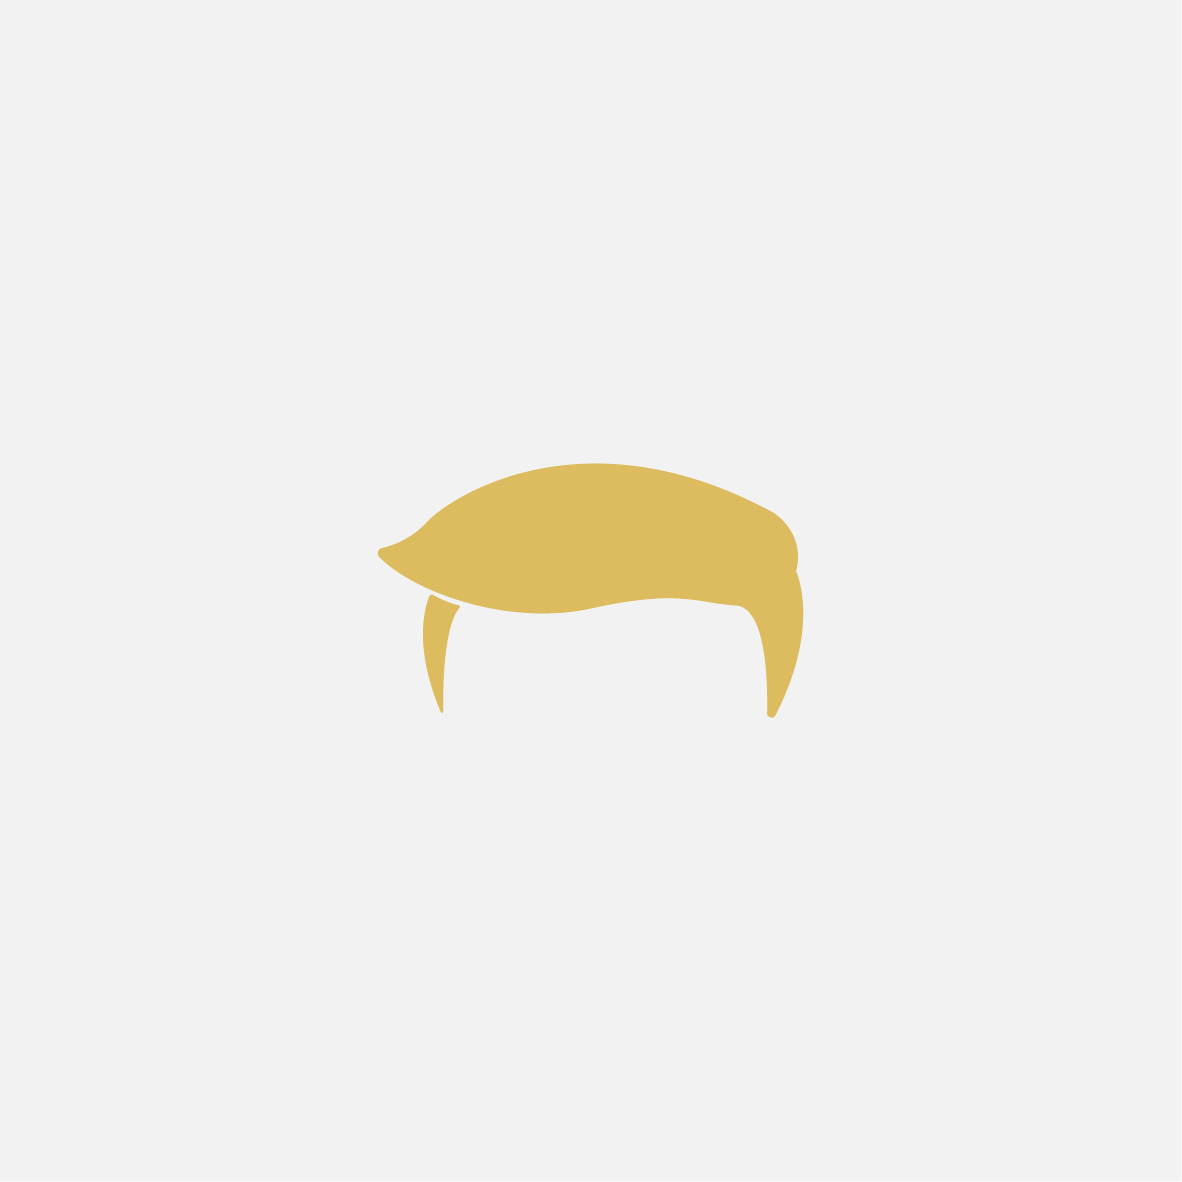 ELECTION DAY 2016 #donaldtrump #illustration #logodesign #graphicdesign #icon #illustrator #graphicart #graphicillustration #adobeillustrator #minimalist #designer #funny #character #hairdonaldtrump #electionday